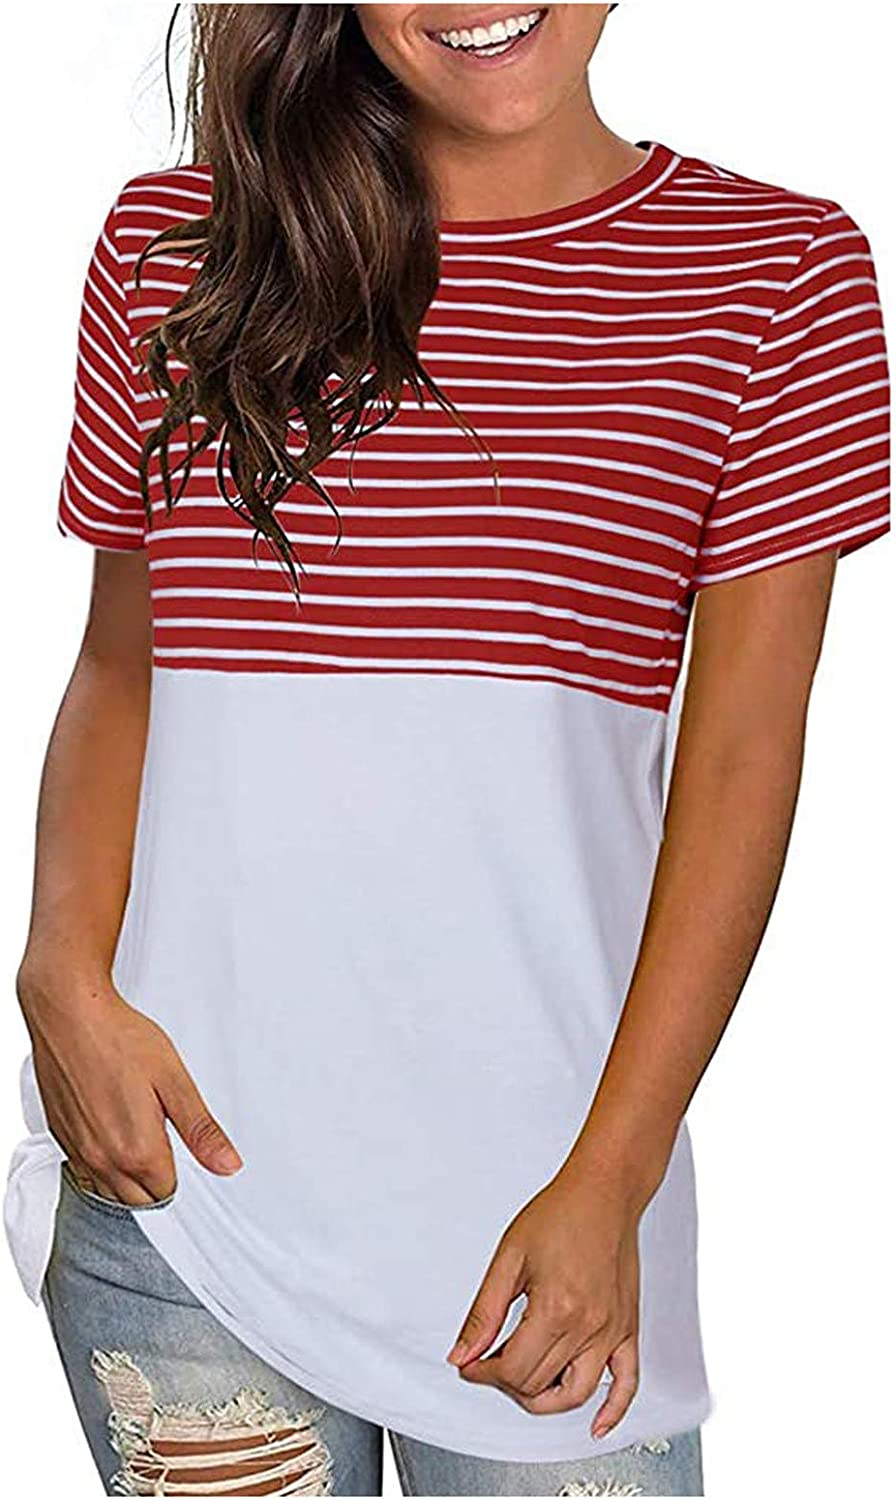 Stripe Tops For Womens O-neck Short Sleeve Basic Tee Splicing T-shirt Workout Tops Summer Tunic Tops